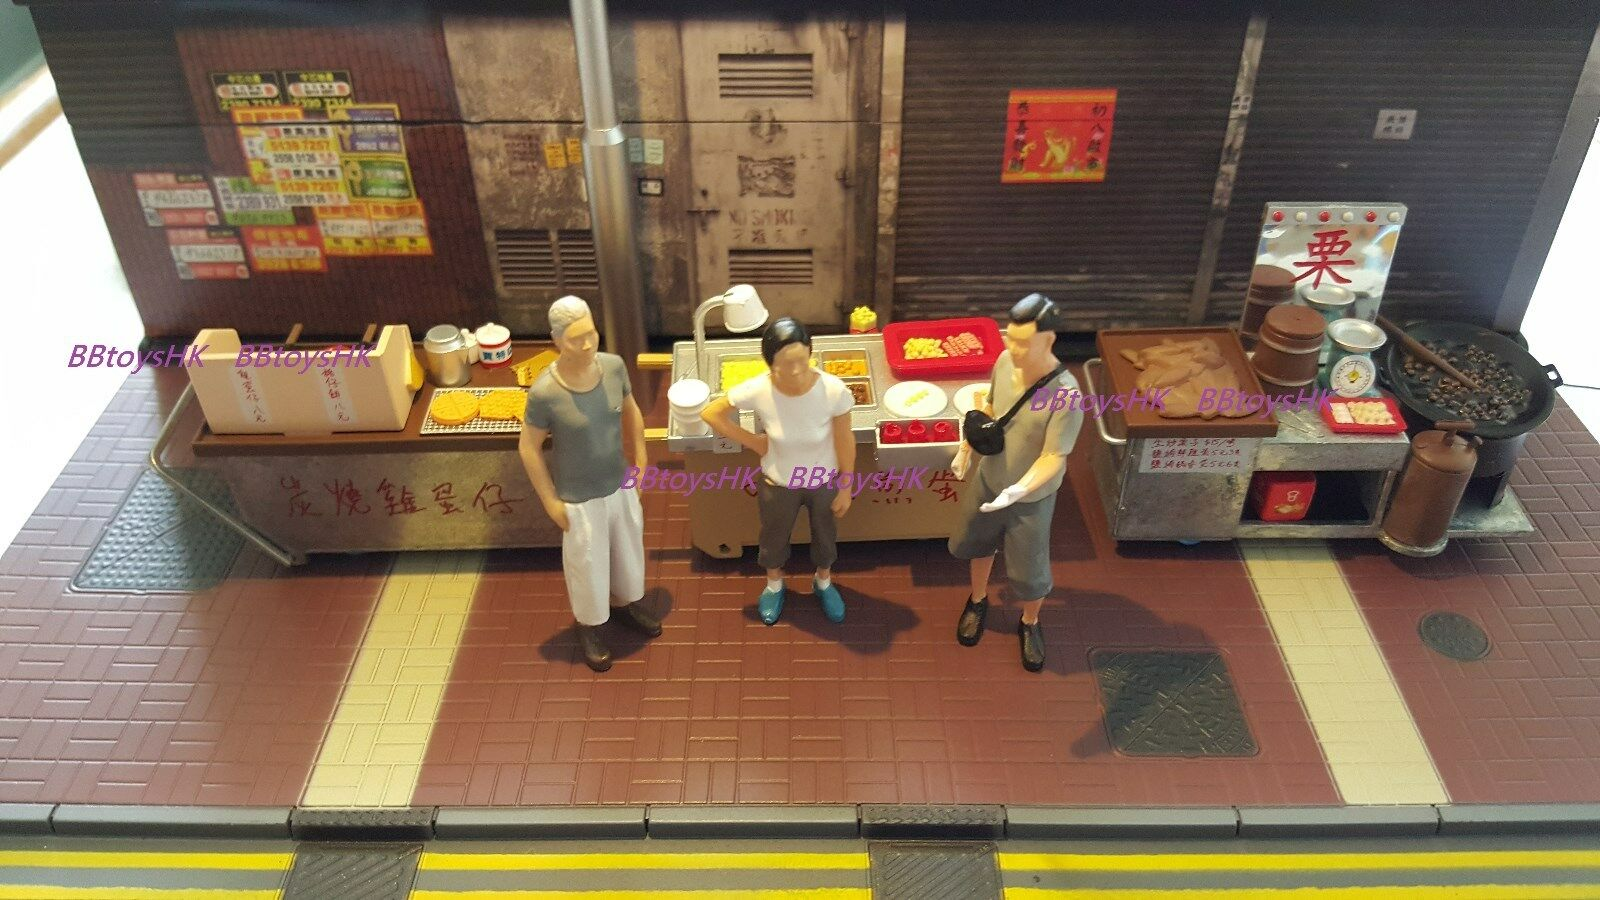 Toyeast Tiny Miniature 1 35 Hong Kong rue +  Food voitureful Diorama Full Set  authentique